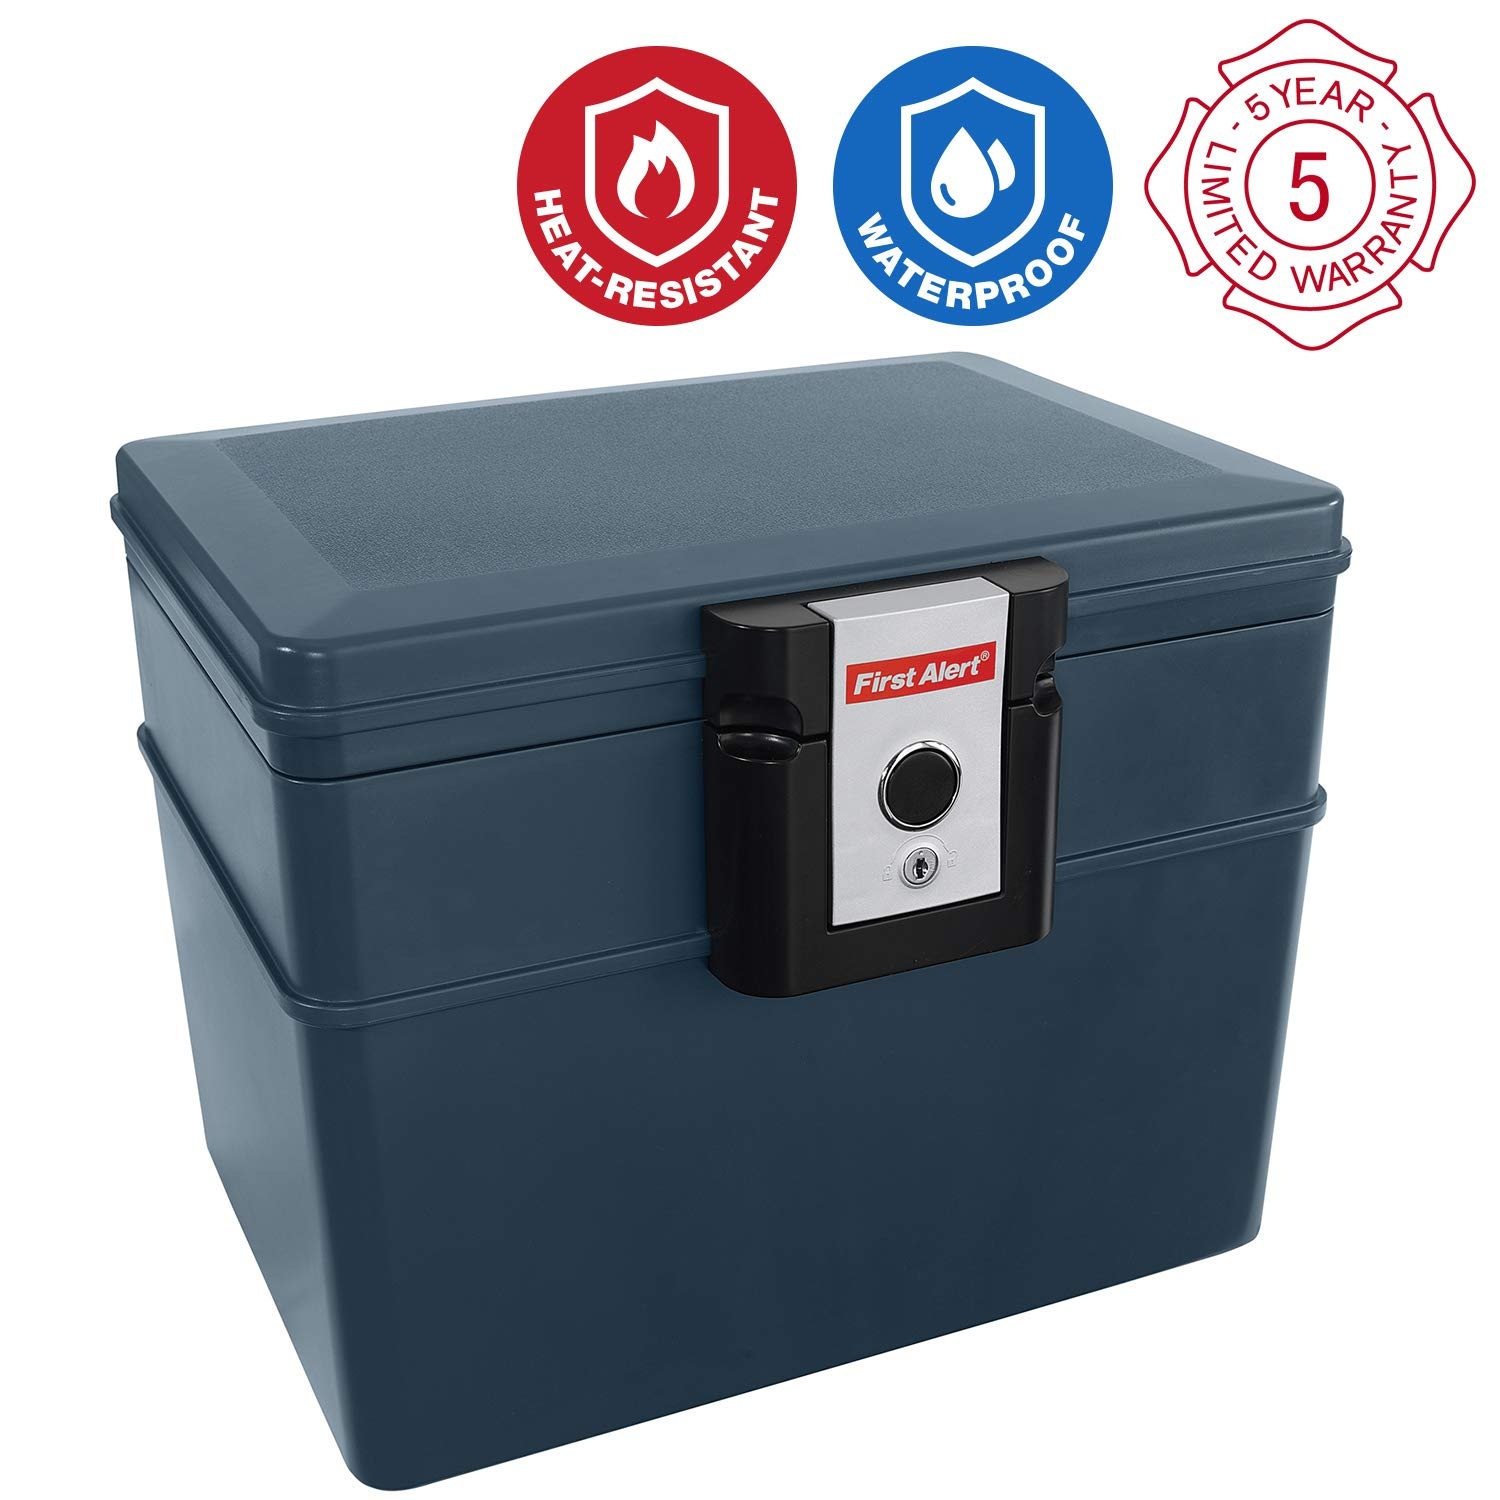 First Alert 2037F Water and Fire Protector File Chest, 0.62 Cubic Feet